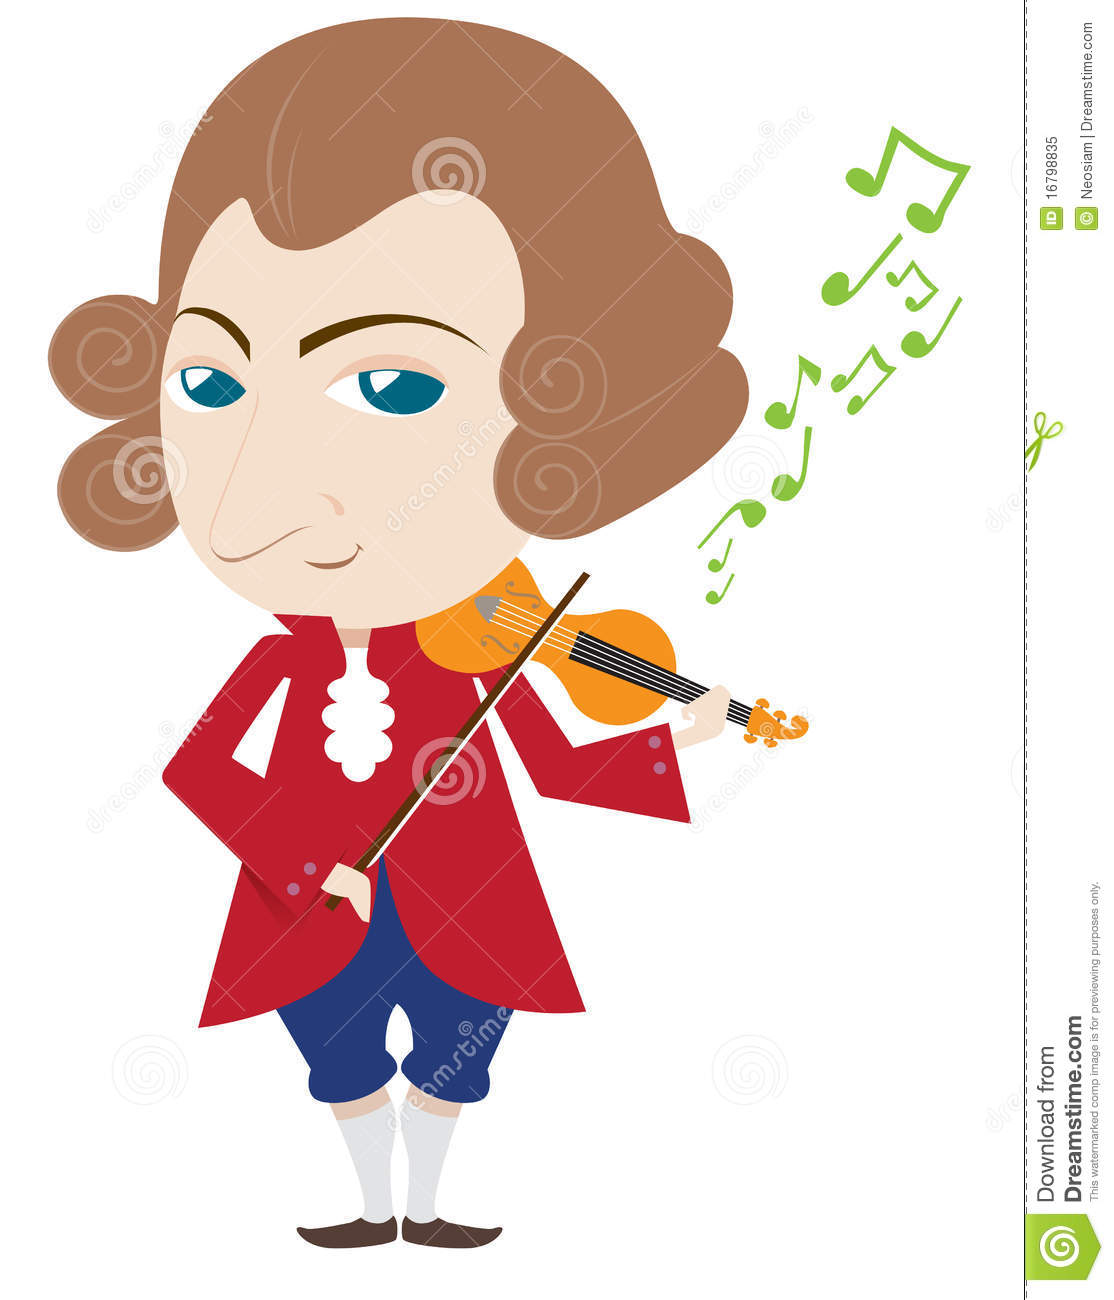 Mozart Royalty Free Stock Photo - Image: 16798835